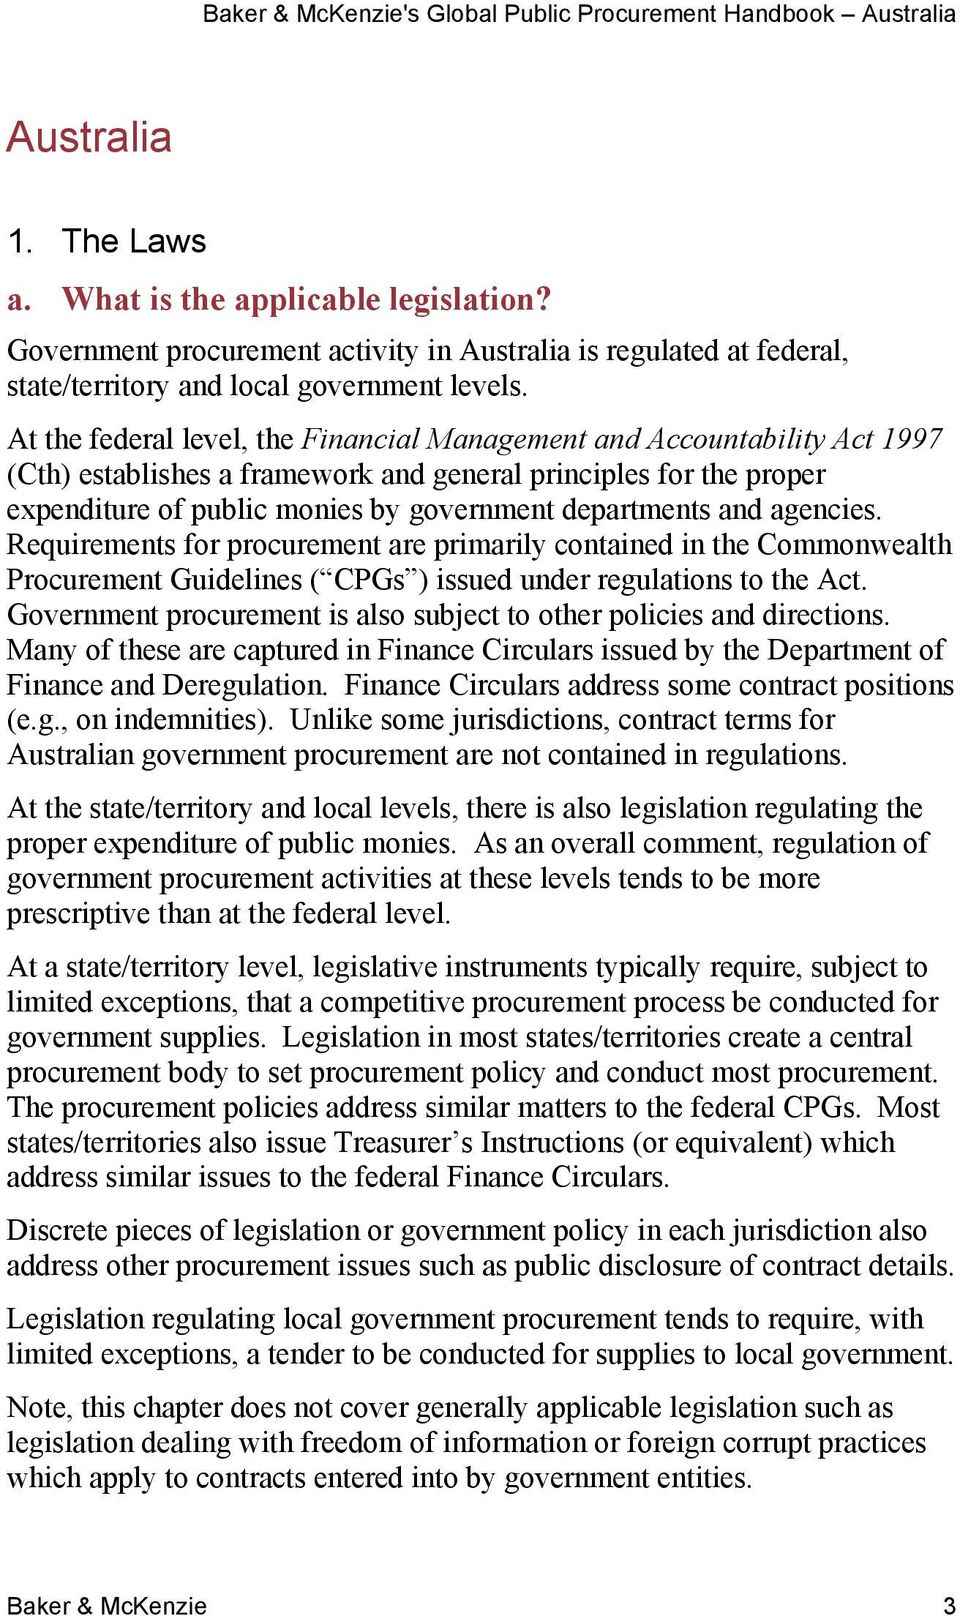 At the federal level, the Financial Management and Accountability Act 1997 (Cth) establishes a framework and general principles for the proper expenditure of public monies by government departments